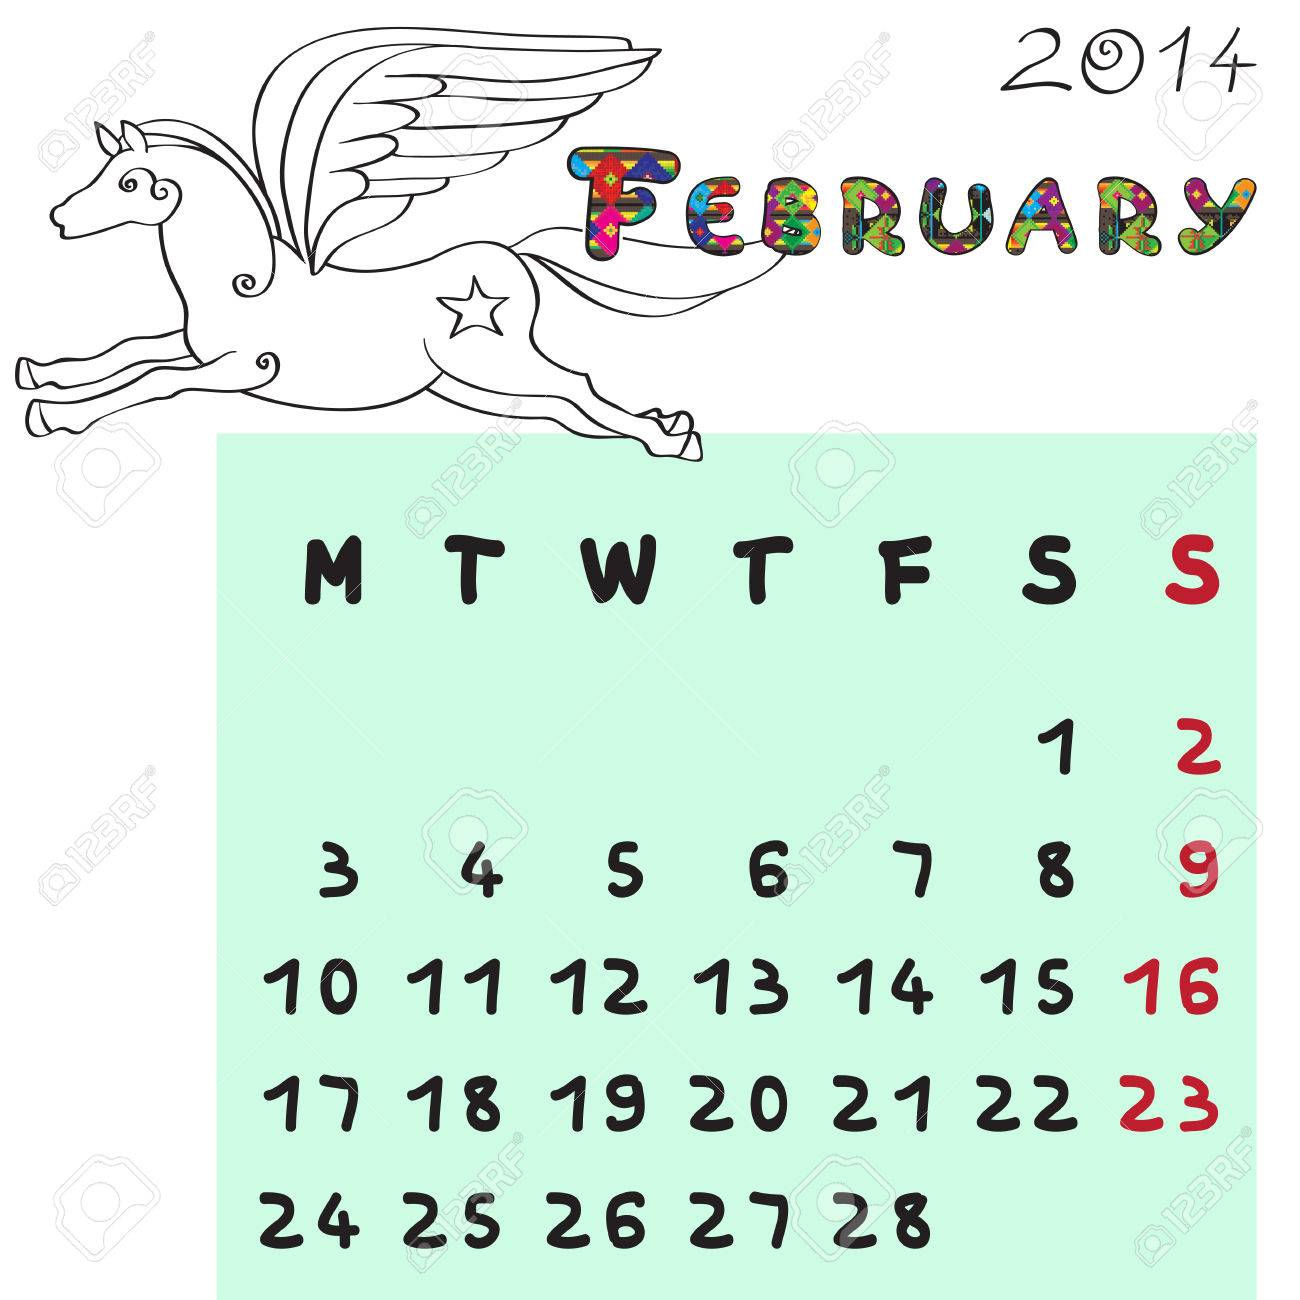 Calendar 2014 year of the horse, graphic illustration of February monthly calendar with toy doodle and original hand drawn text, colored book format for kids Stock Vector - 24079103